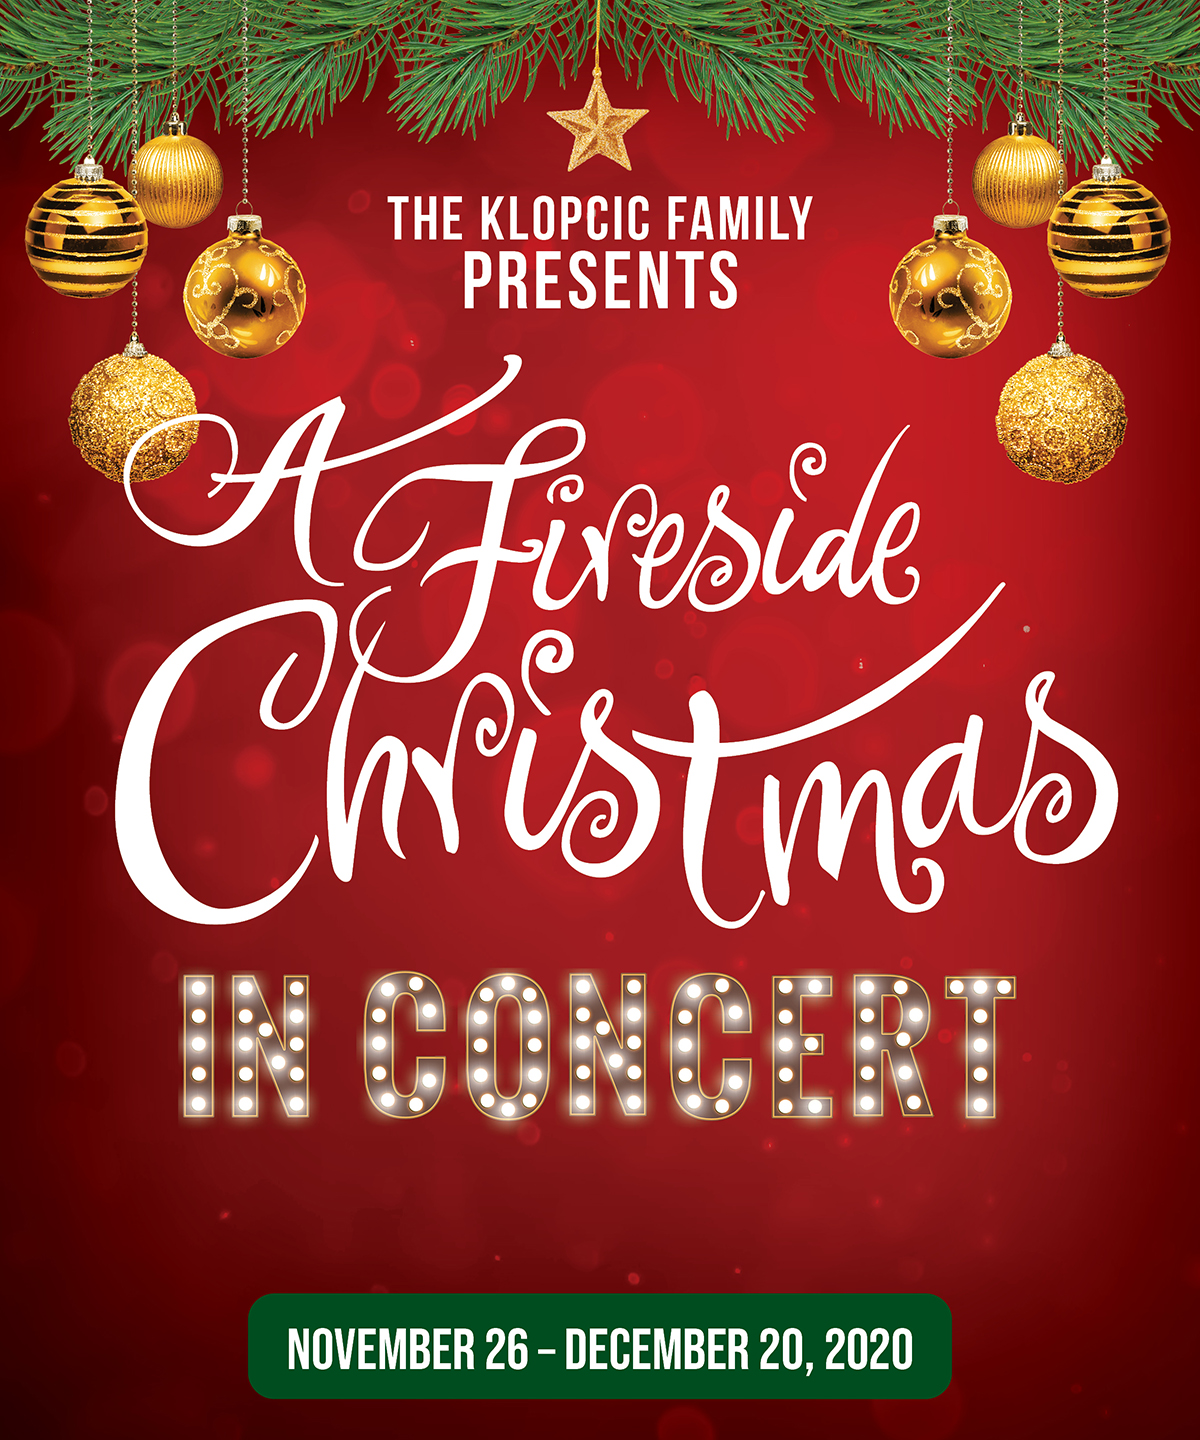 Concerts On Christmas Eve 2020 The Fireside Theatre | Midwest's Most Popular Dinner Theatre